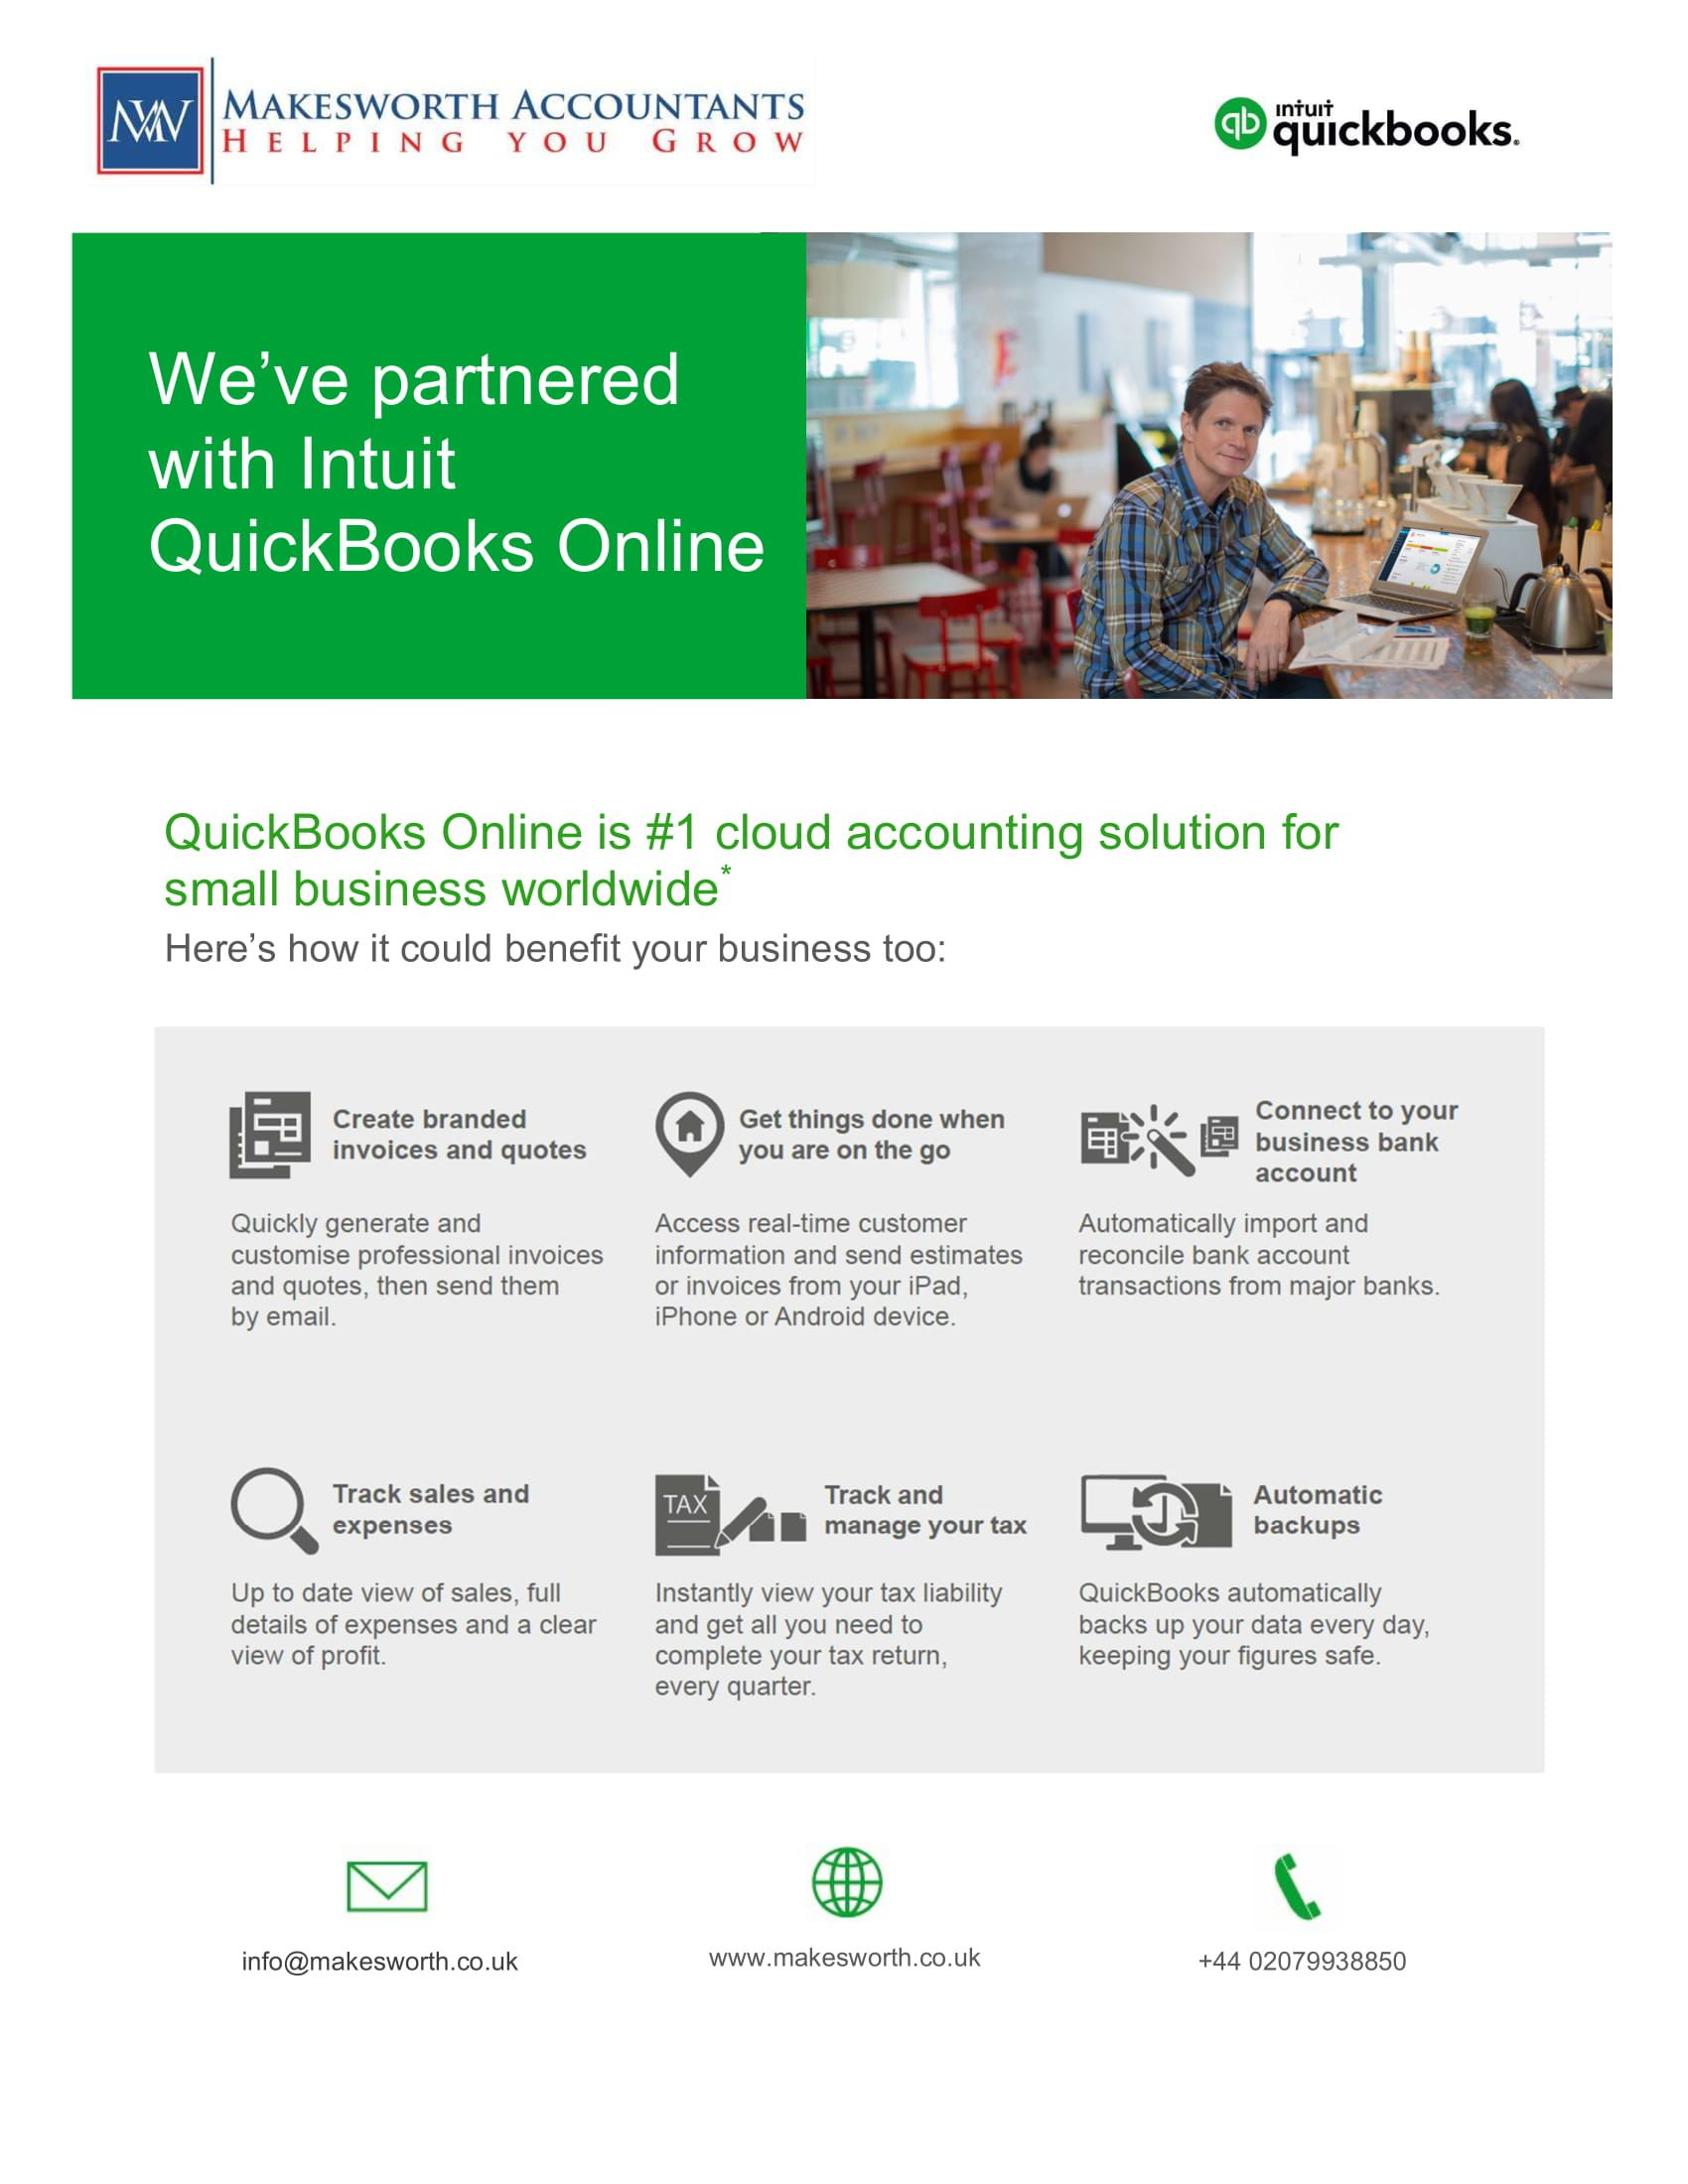 Pin By Makesworth Accountants On Makesworth Accountants Updates Quickbooks Quickbooks Online Cloud Accounting